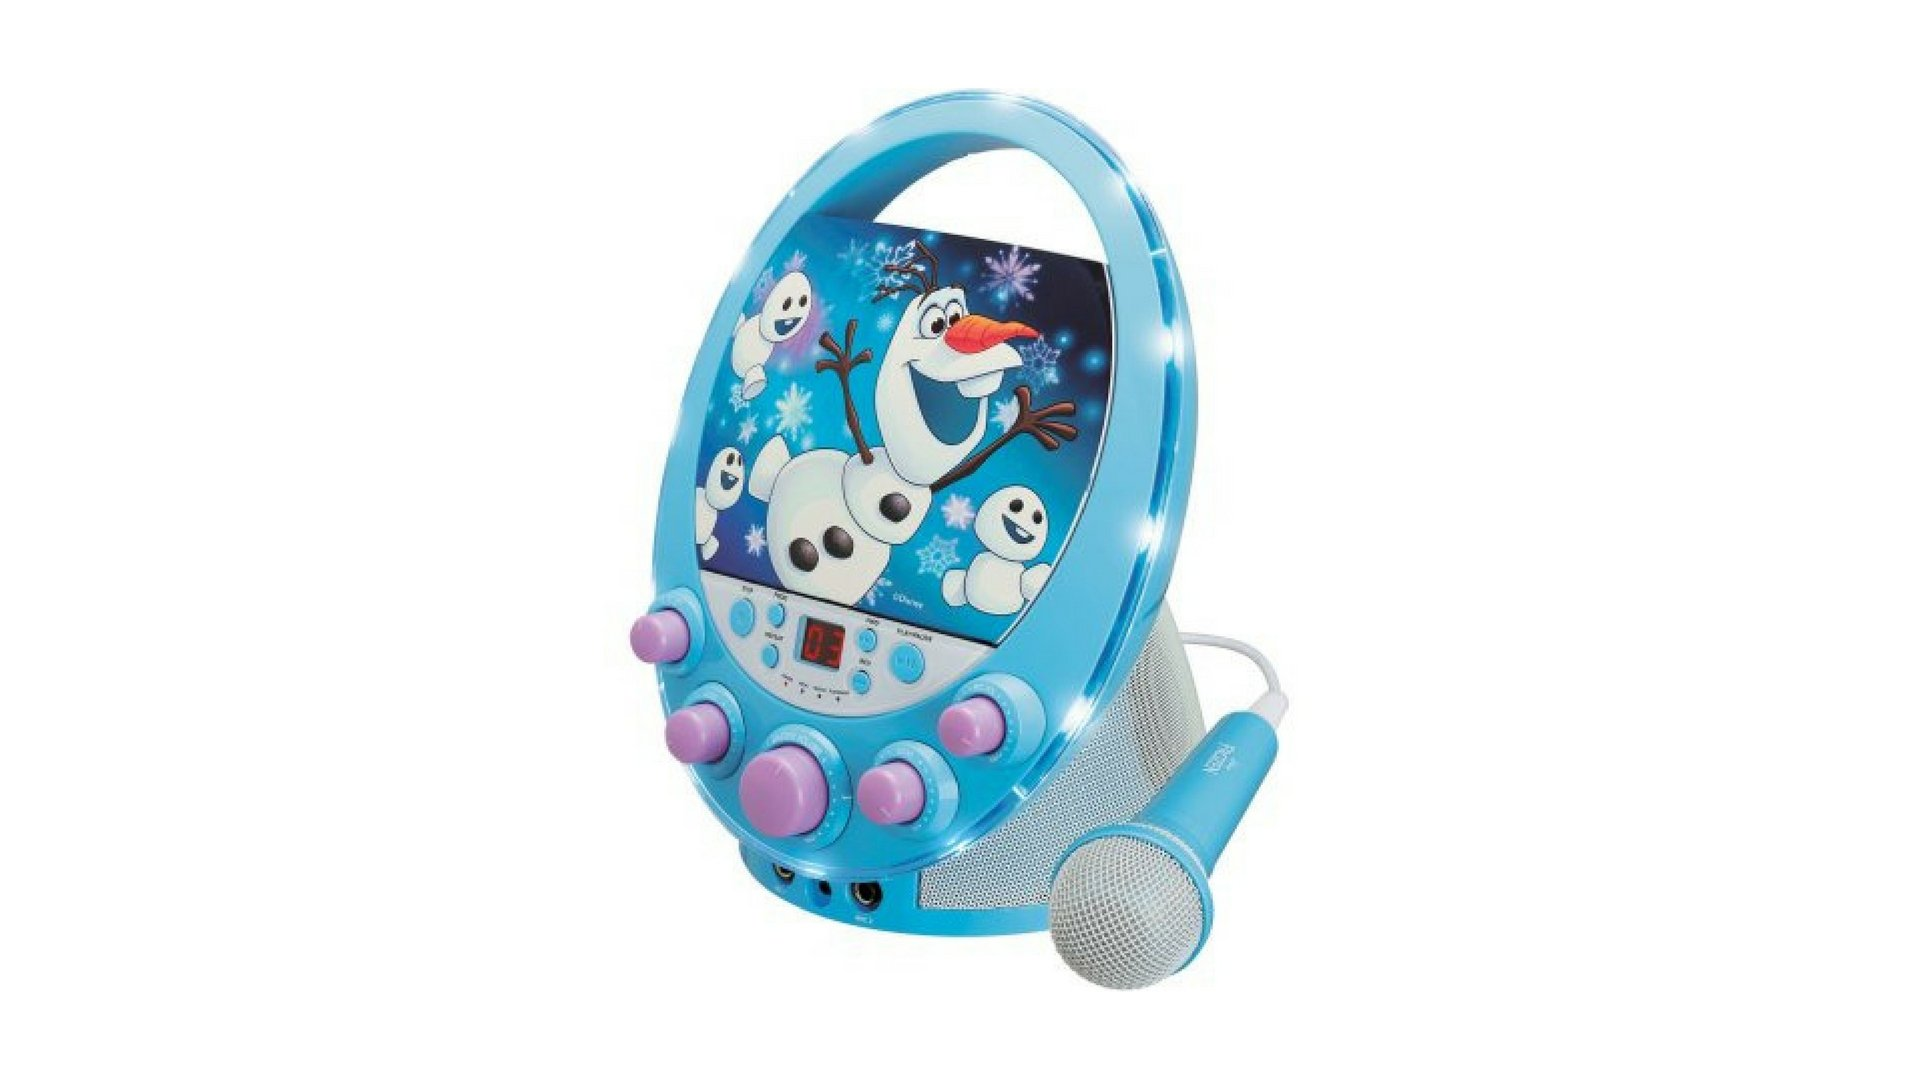 Oval Flashing Light Karaoke Features Olaf the snowman Design Microphone included